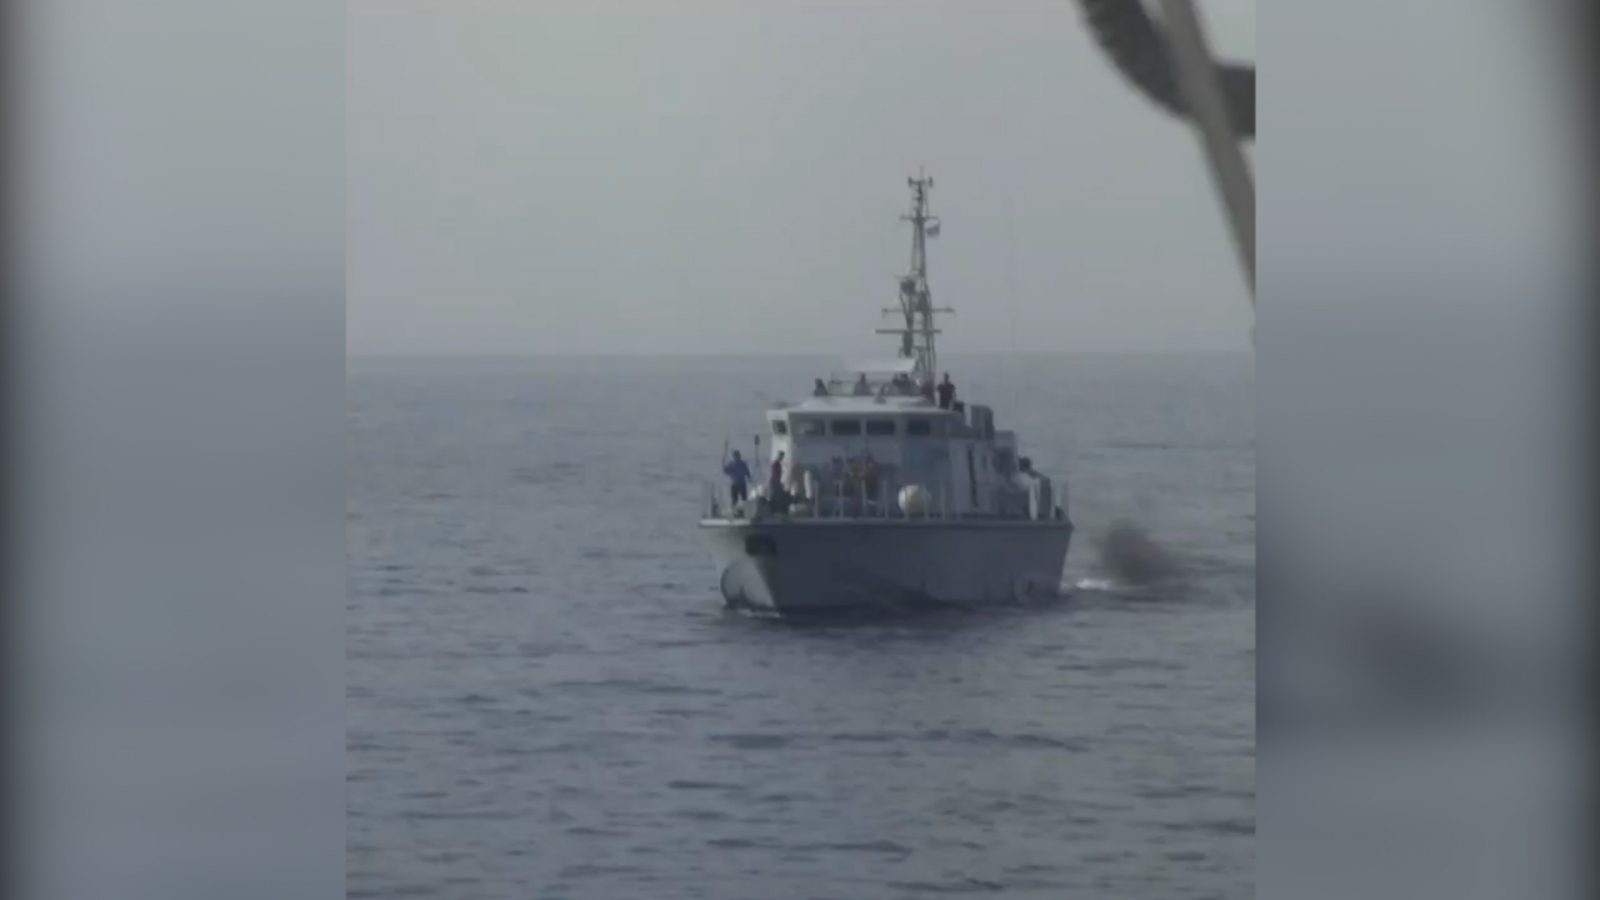 NGO Video Purports to Show Libyan Coast Guard Firing at Migrant Rescue Boat